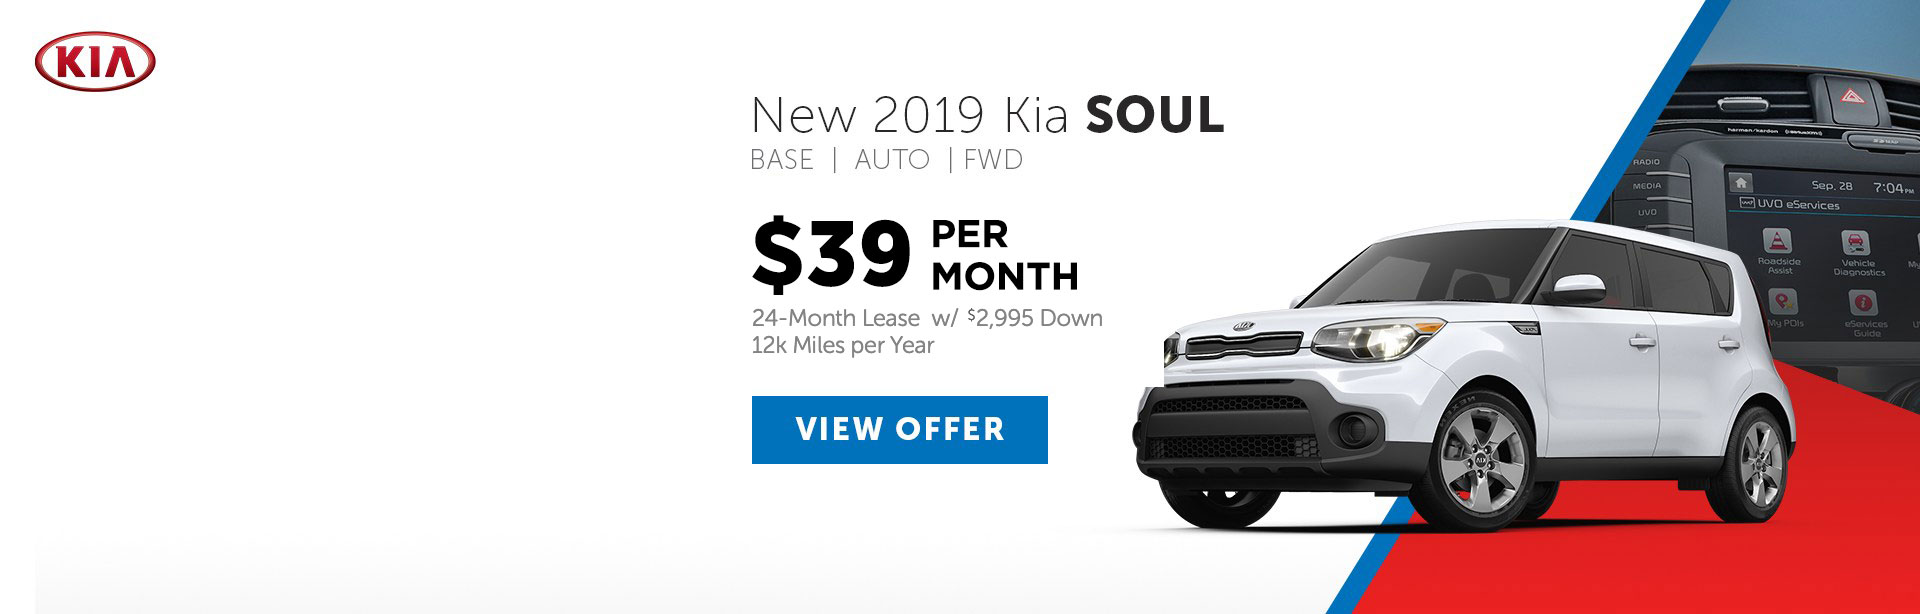 Eastern Shore Kia Pride Kia Of Lynn New Used Kia Dealership In Lynn Ma